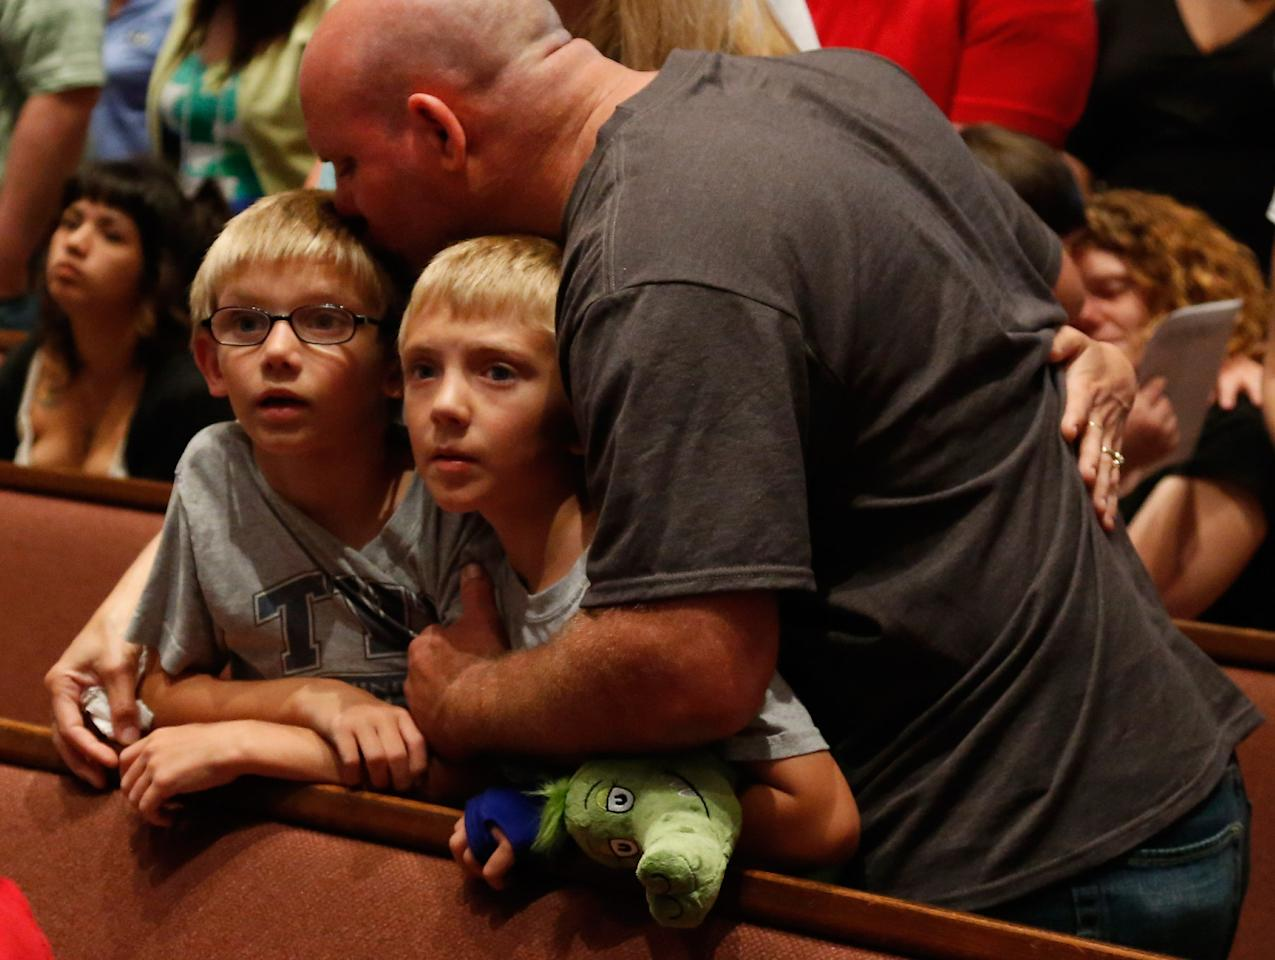 MOORE, OK - MAY 26:  Tornado victims Russell Smith hugs his children and Briarwood Elementary School students, Evan and Justin Smith, during the Oklahoma Strong memorial service held to honor victims of the recent deadly tornado at the First Baptist Church on May 26, 2013 in Moore, Oklahoma. The tornado of EF5 strength and two miles wide touched down May 20 killing at least 24 people and leaving behind extensive damage to homes and businesses. U.S. President Barack Obama visited the area Sunday and promised federal aid to supplement state and local recovery efforts.  (Photo by Sue Ogrocki-Pool/Getty Images)